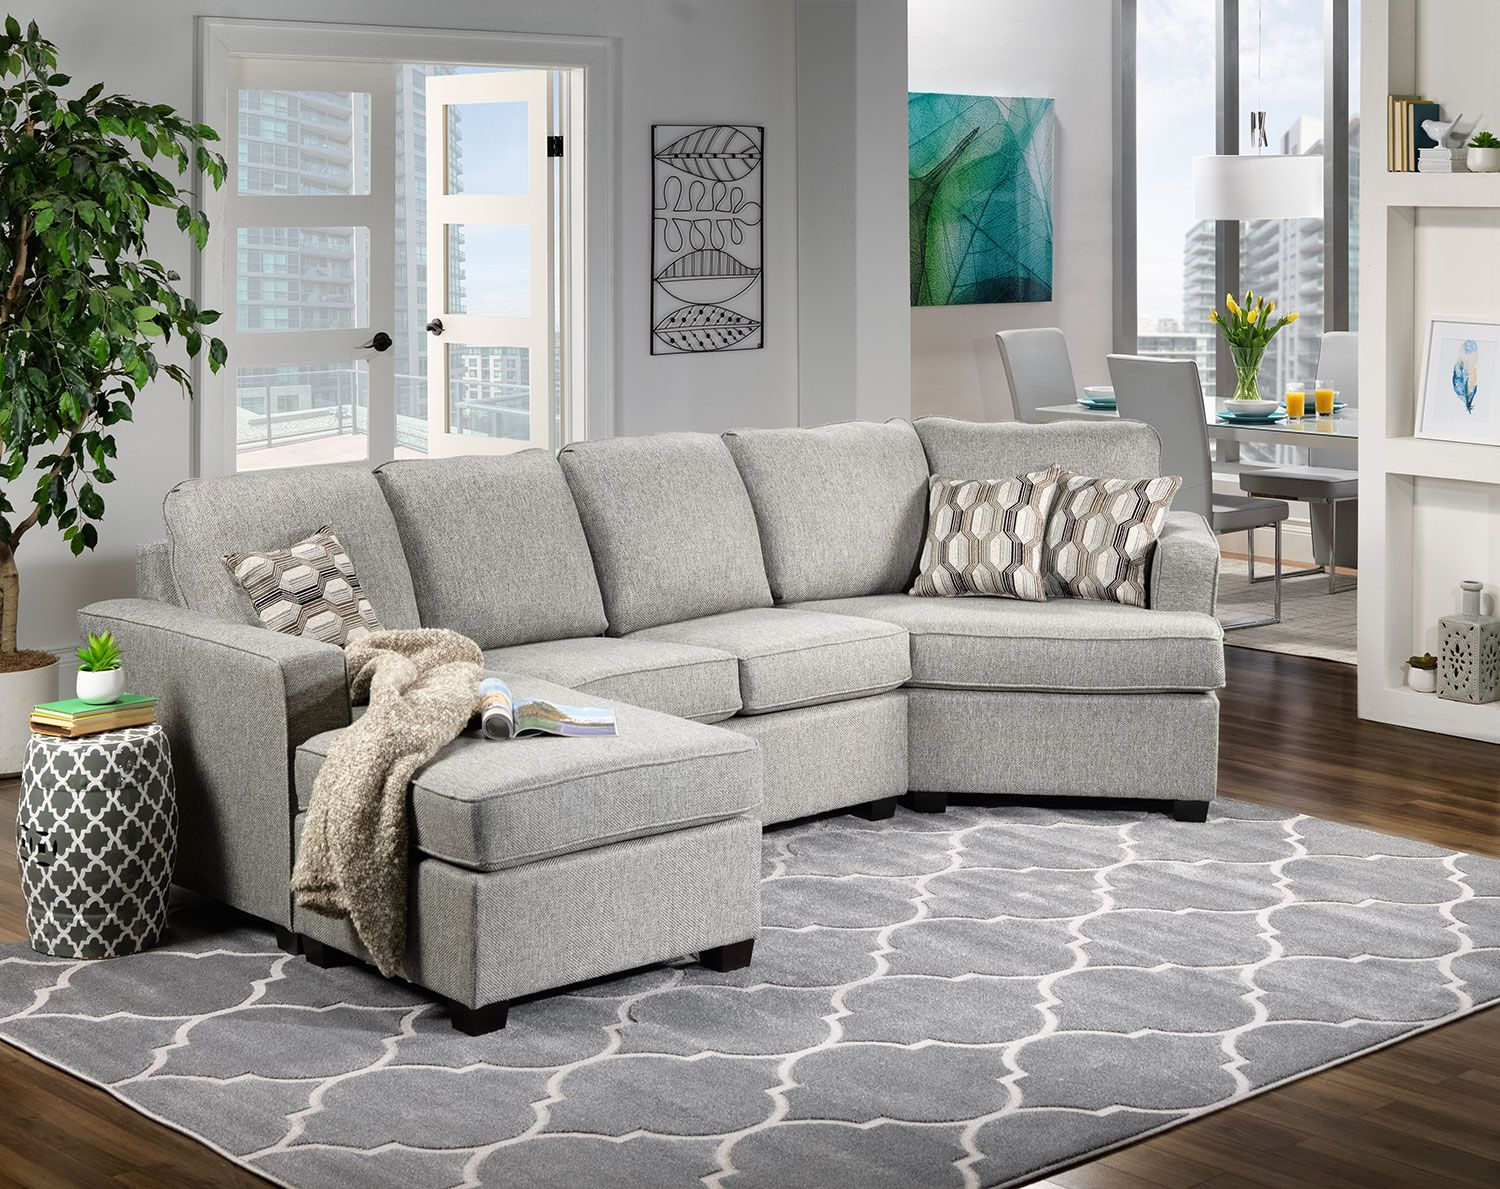 chamberly 3piece sectional sofa with left arm corner chaise armless loveseat right arm cuddler and pillows included in alloy color